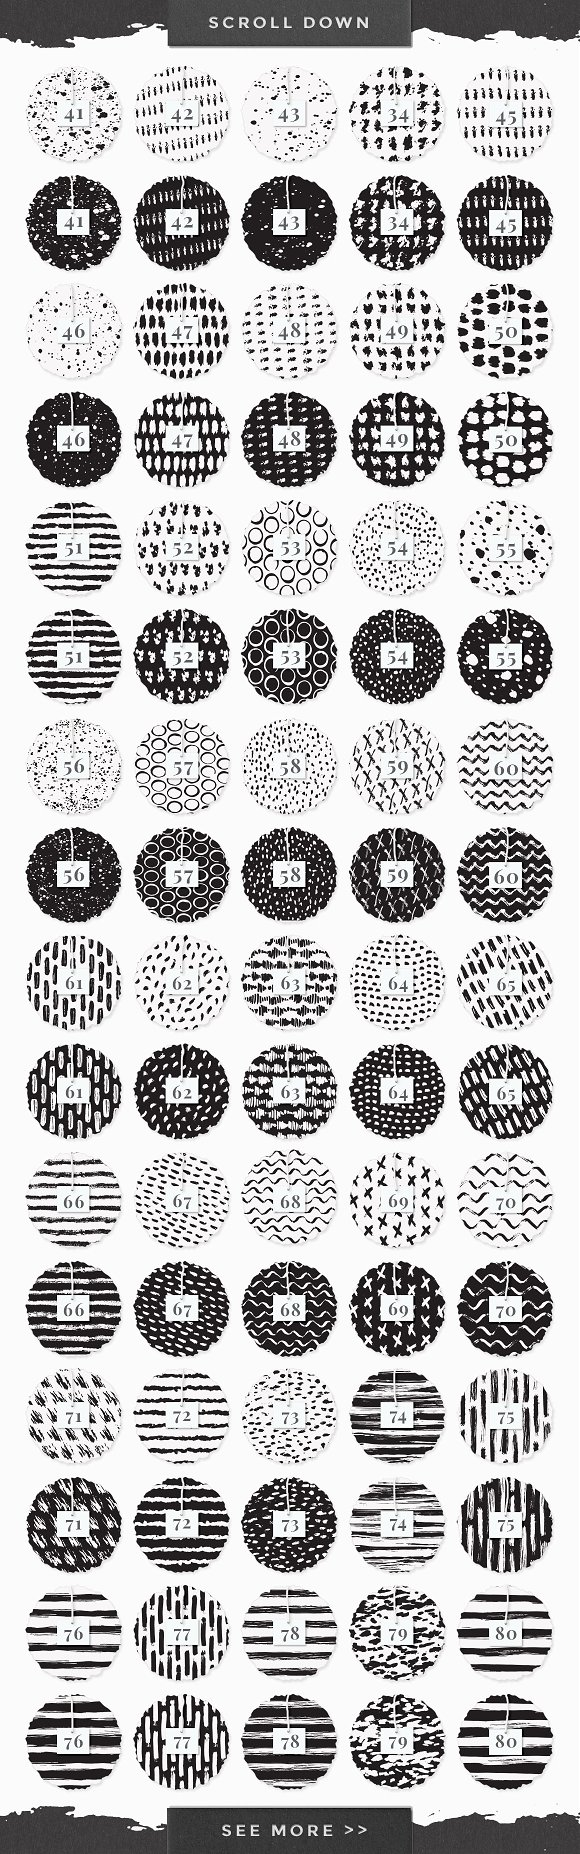 InkBox - 240 Inky Patterns + Extras! in Patterns - product preview 5